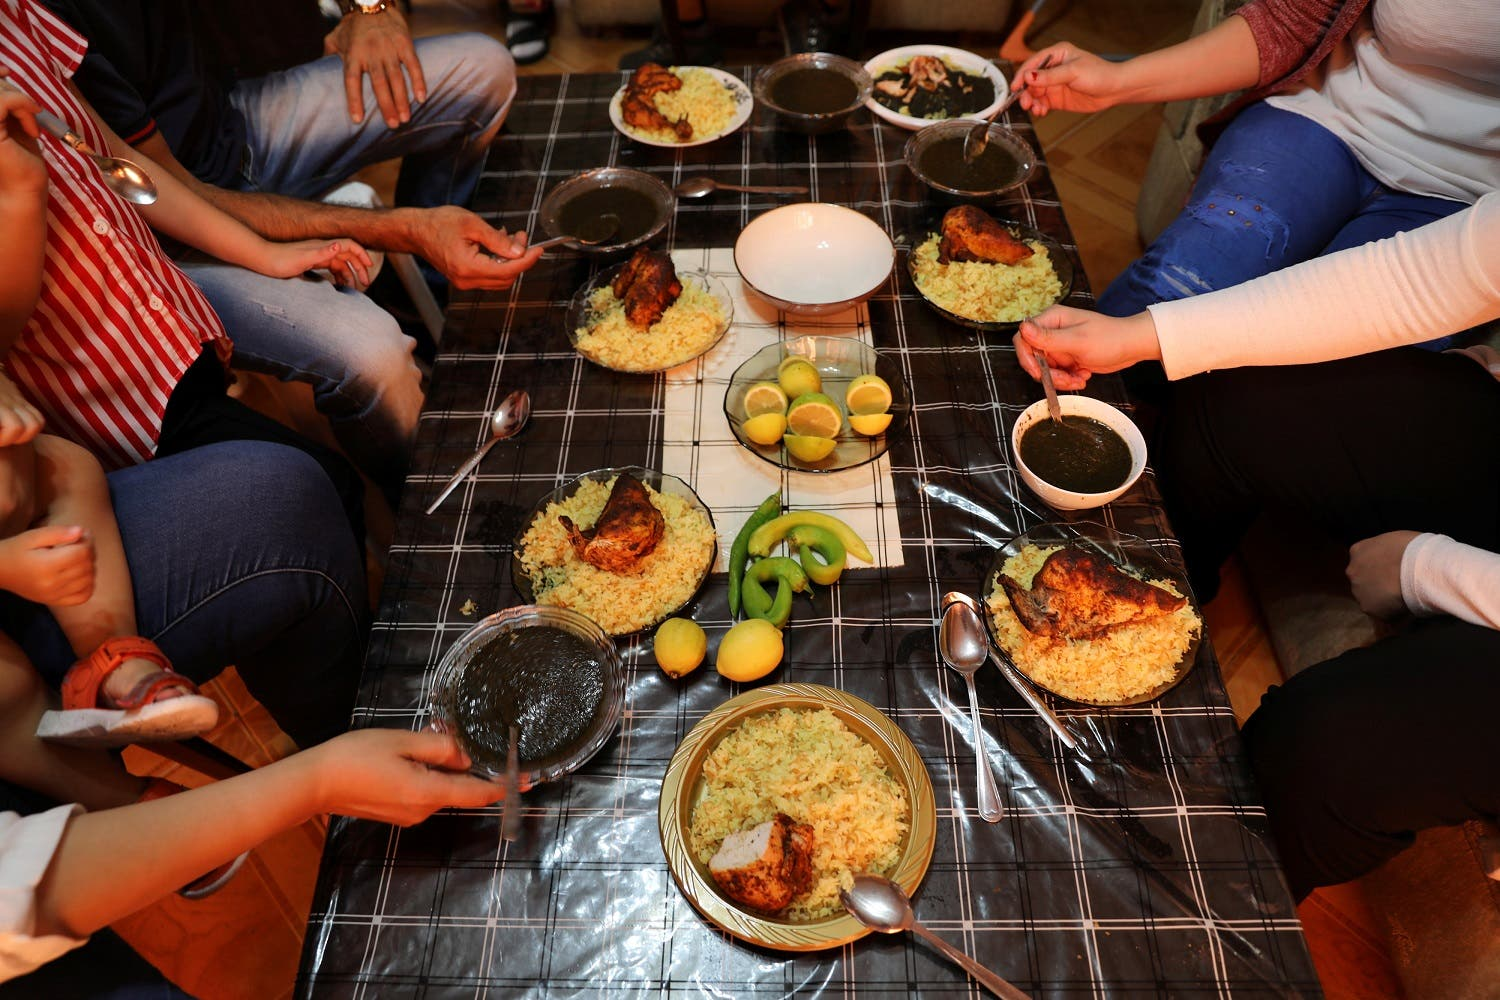 Palestinians eat molokhya at a home in Jerusalem August 10, 2017. Picture taken August 10, 2017. (Reuters)